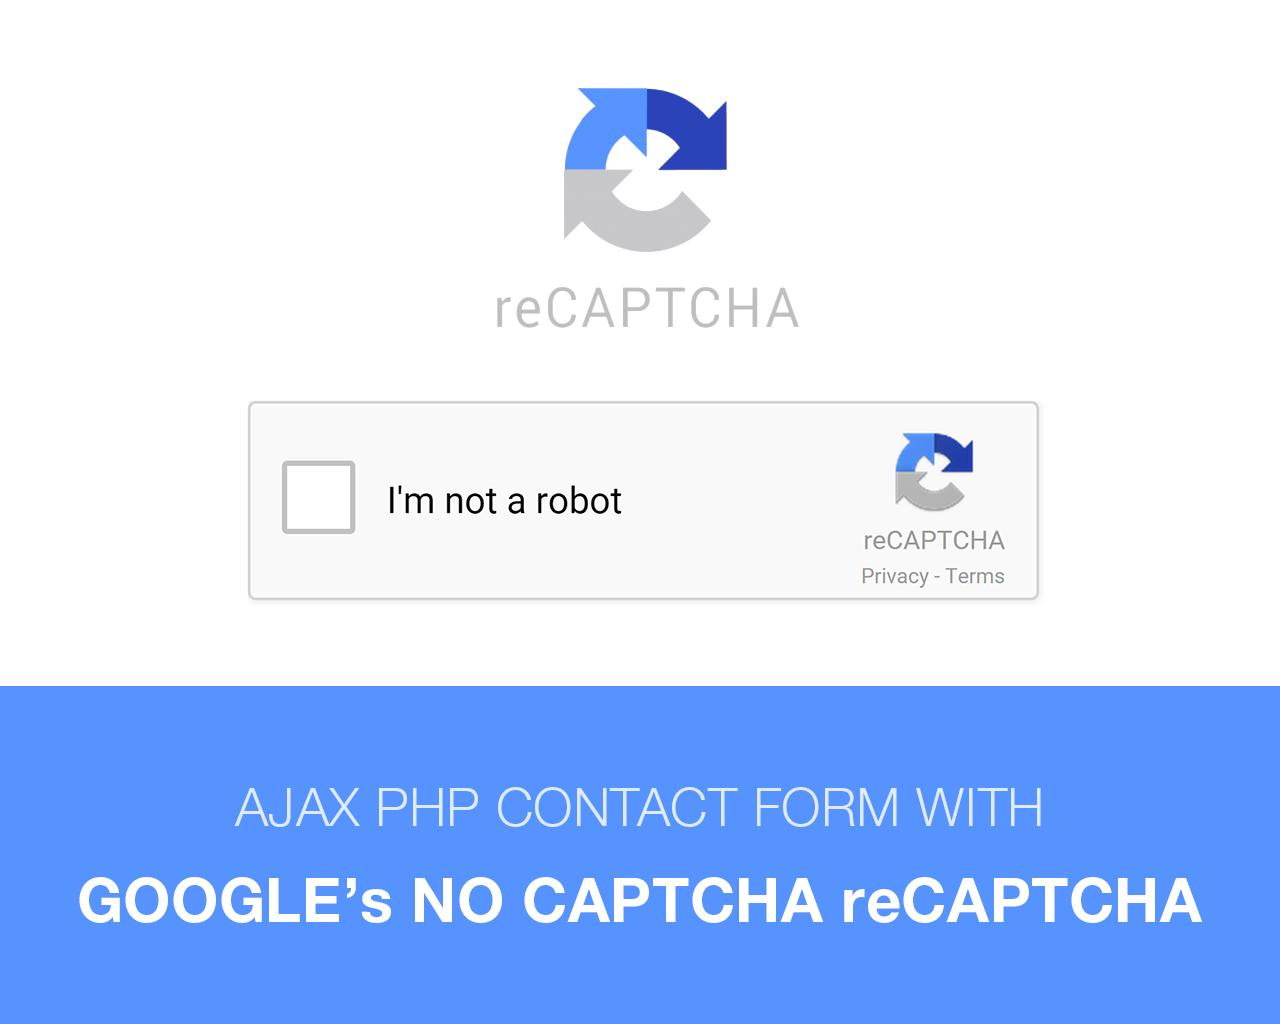 PHP Contact Form with Google No Captcha Recaptcha (v3) by surjithctly - 89787